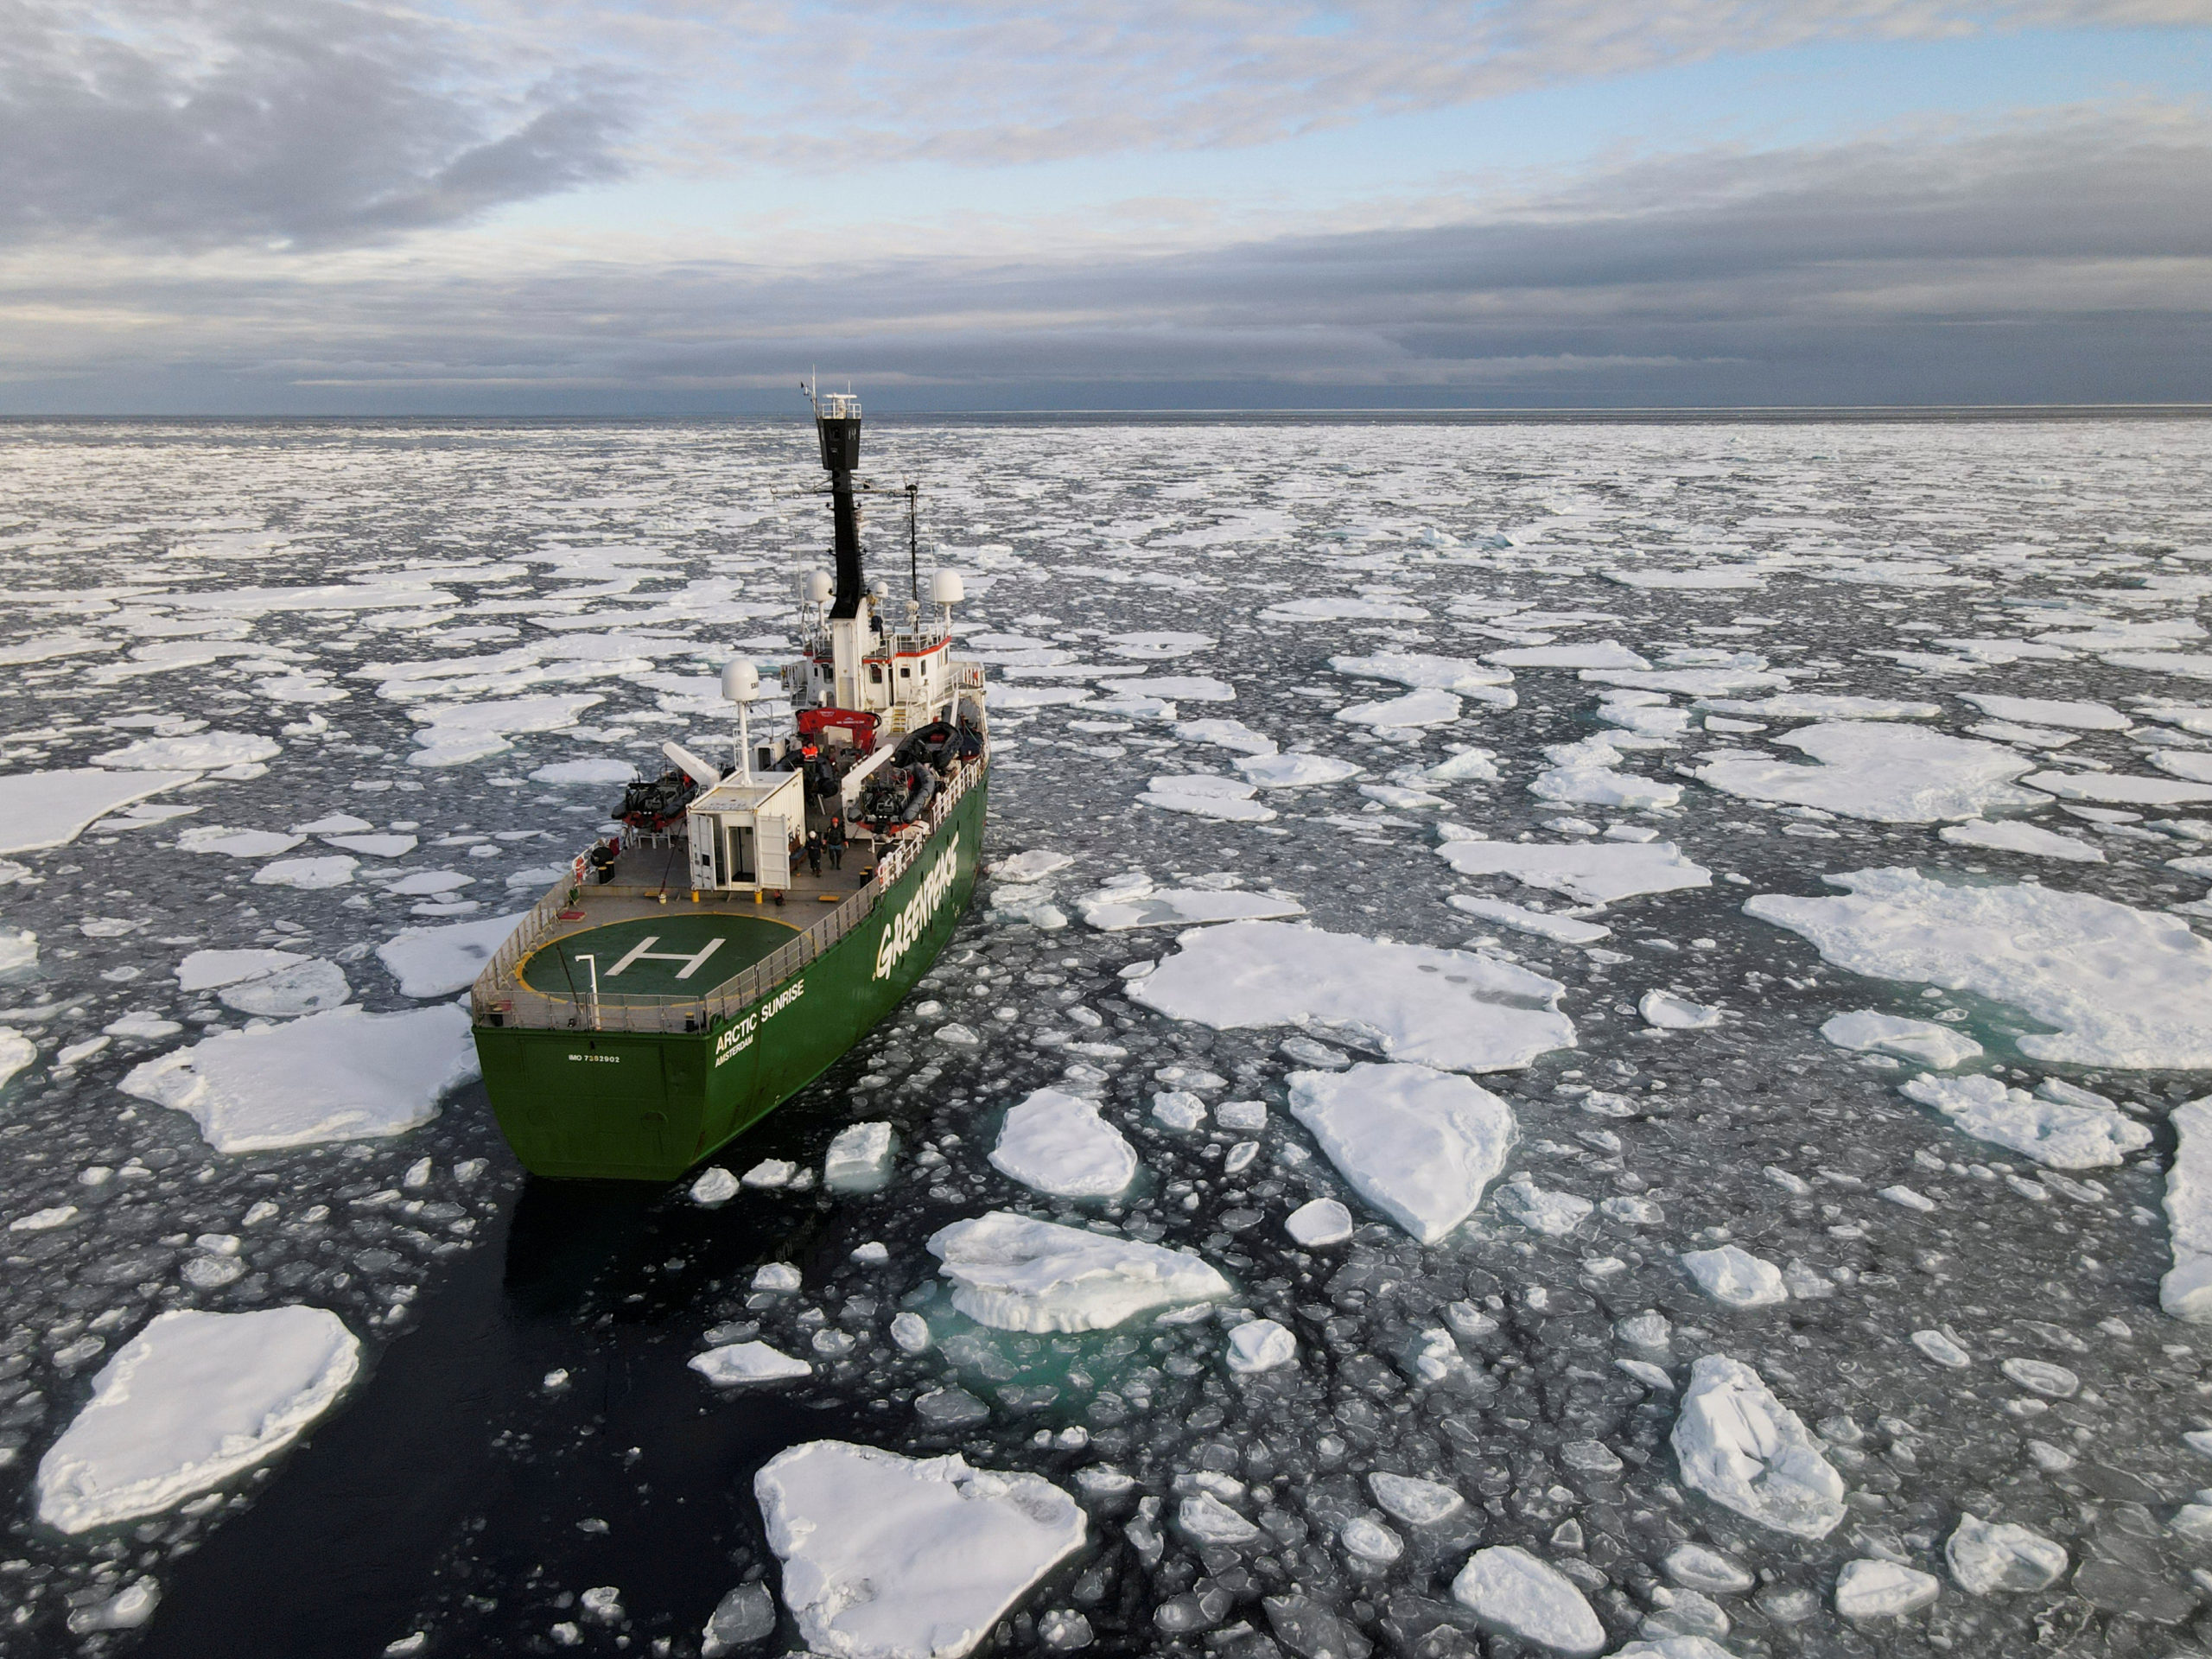 Greenpeace's Arctic Sunrise Navigating In Ice